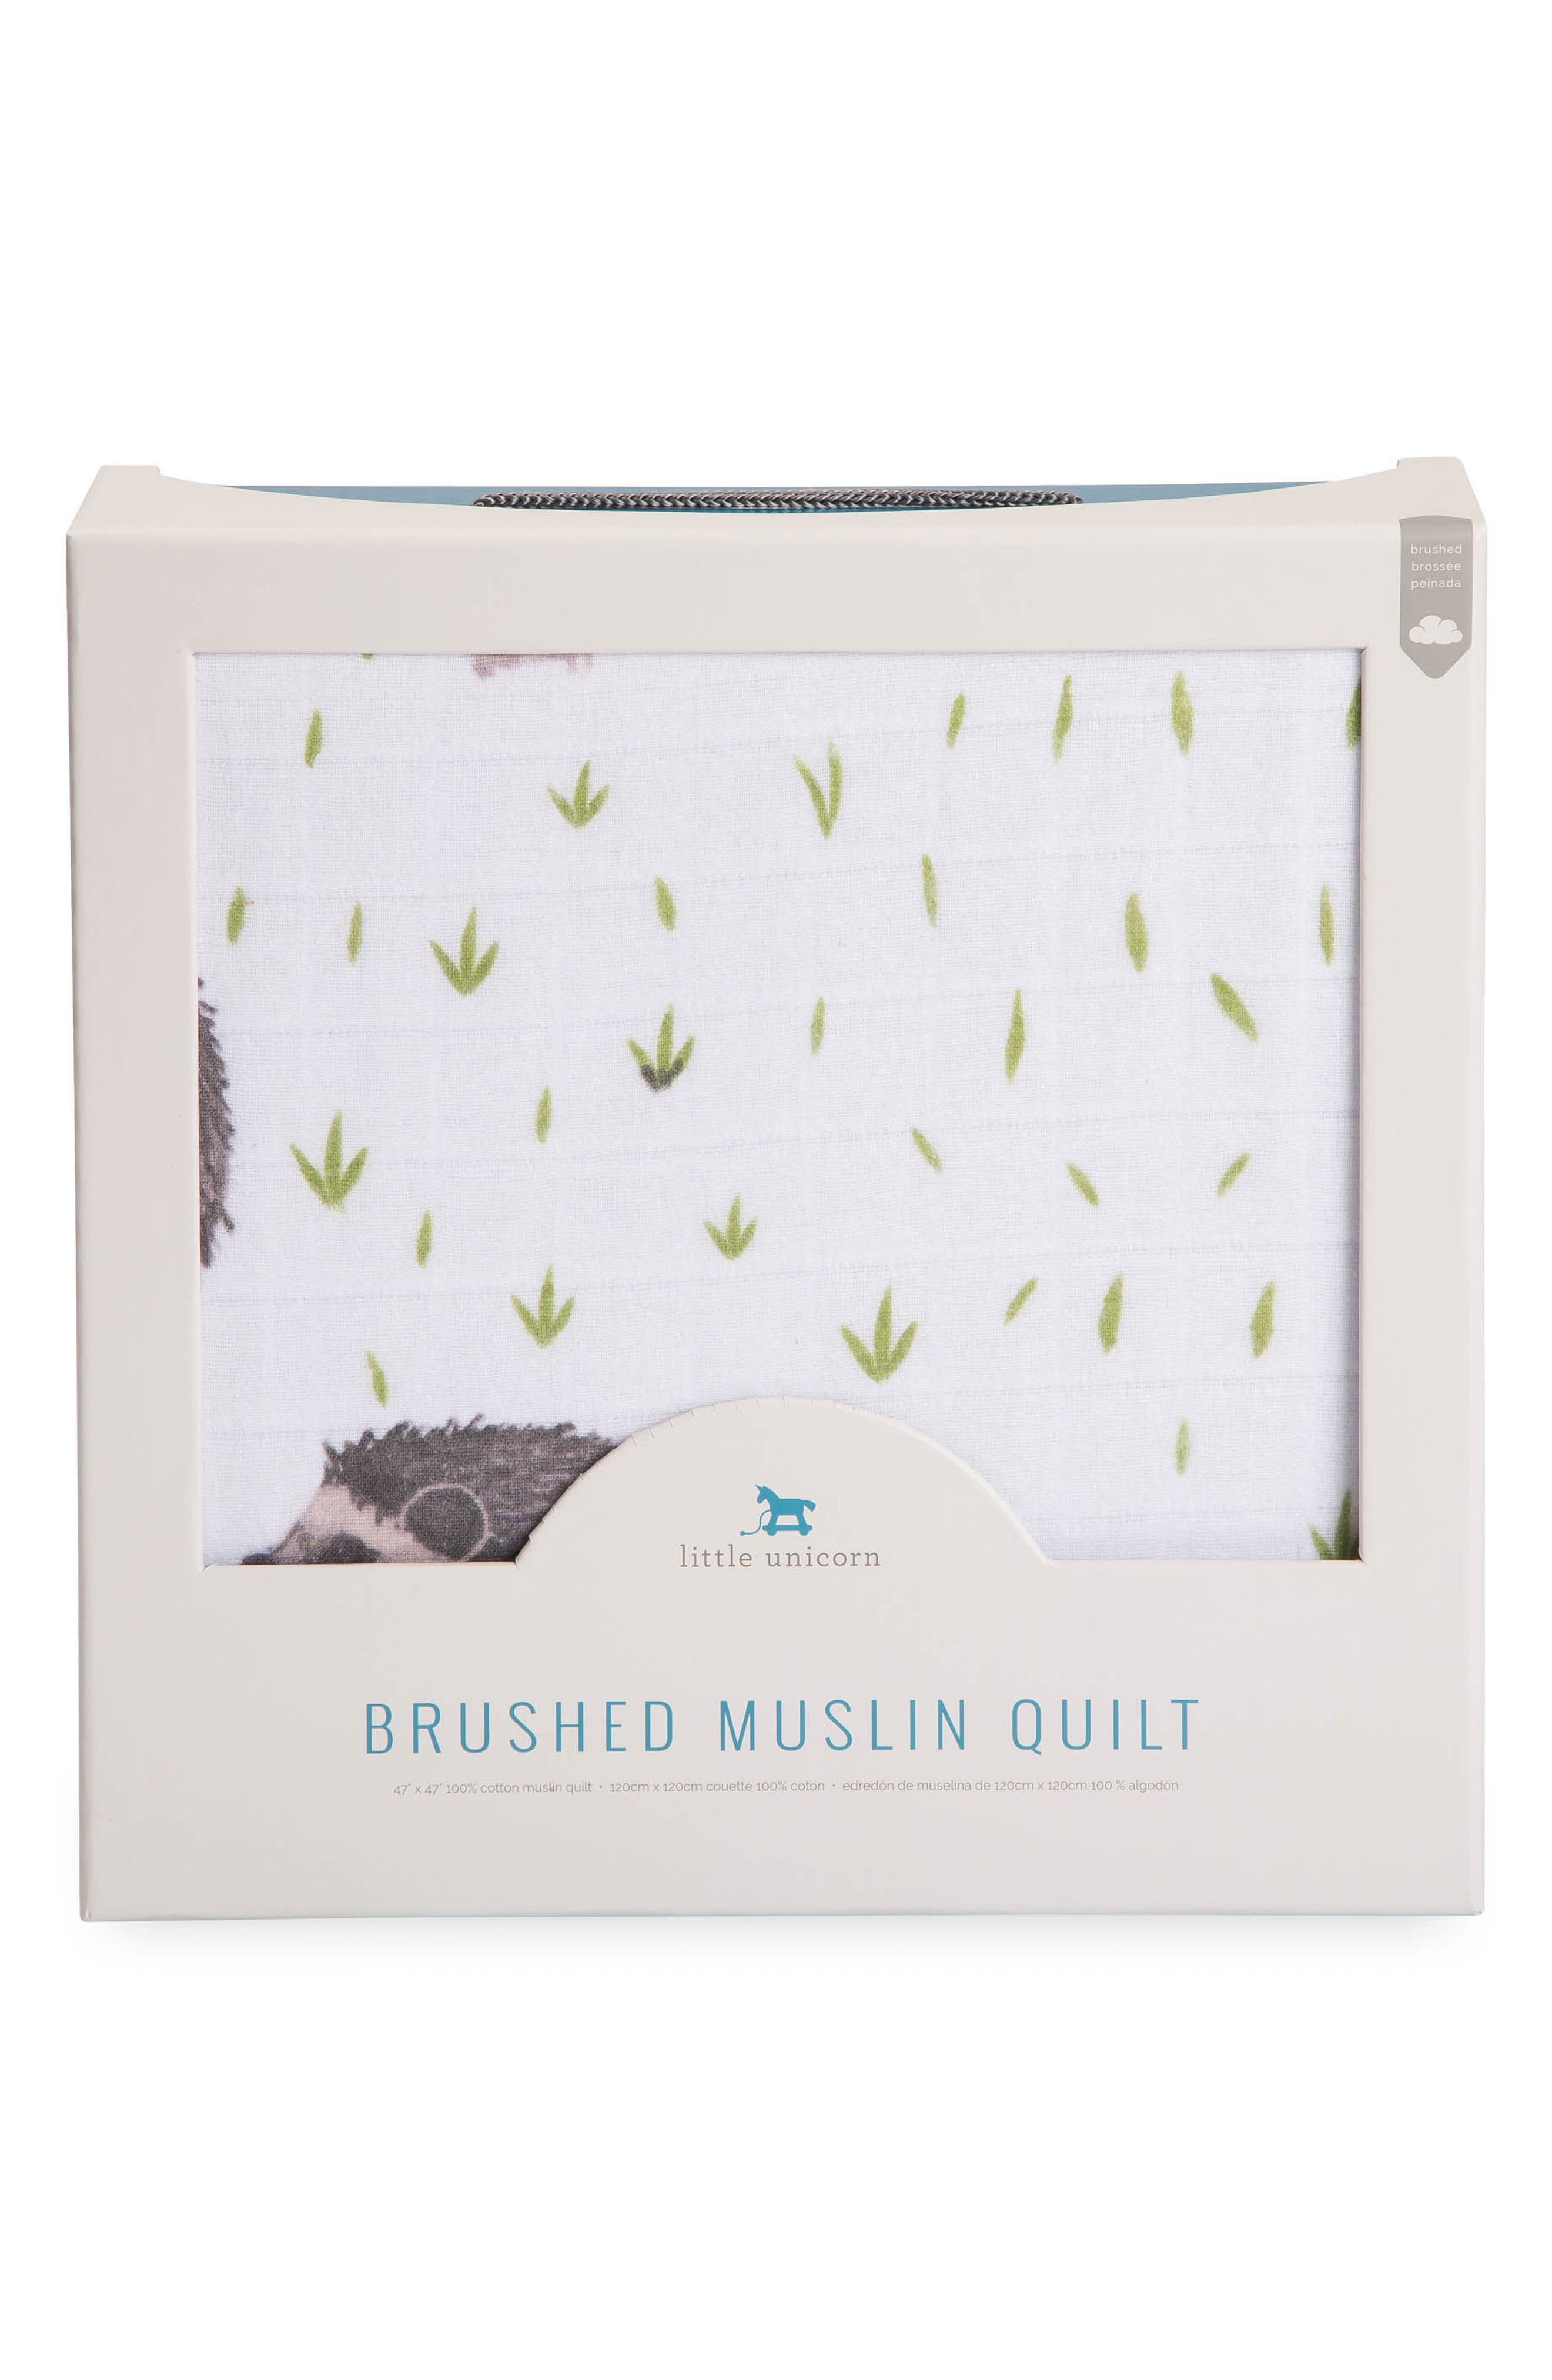 Brushed Cotton Muslin Quilt,                             Alternate thumbnail 3, color,                             250